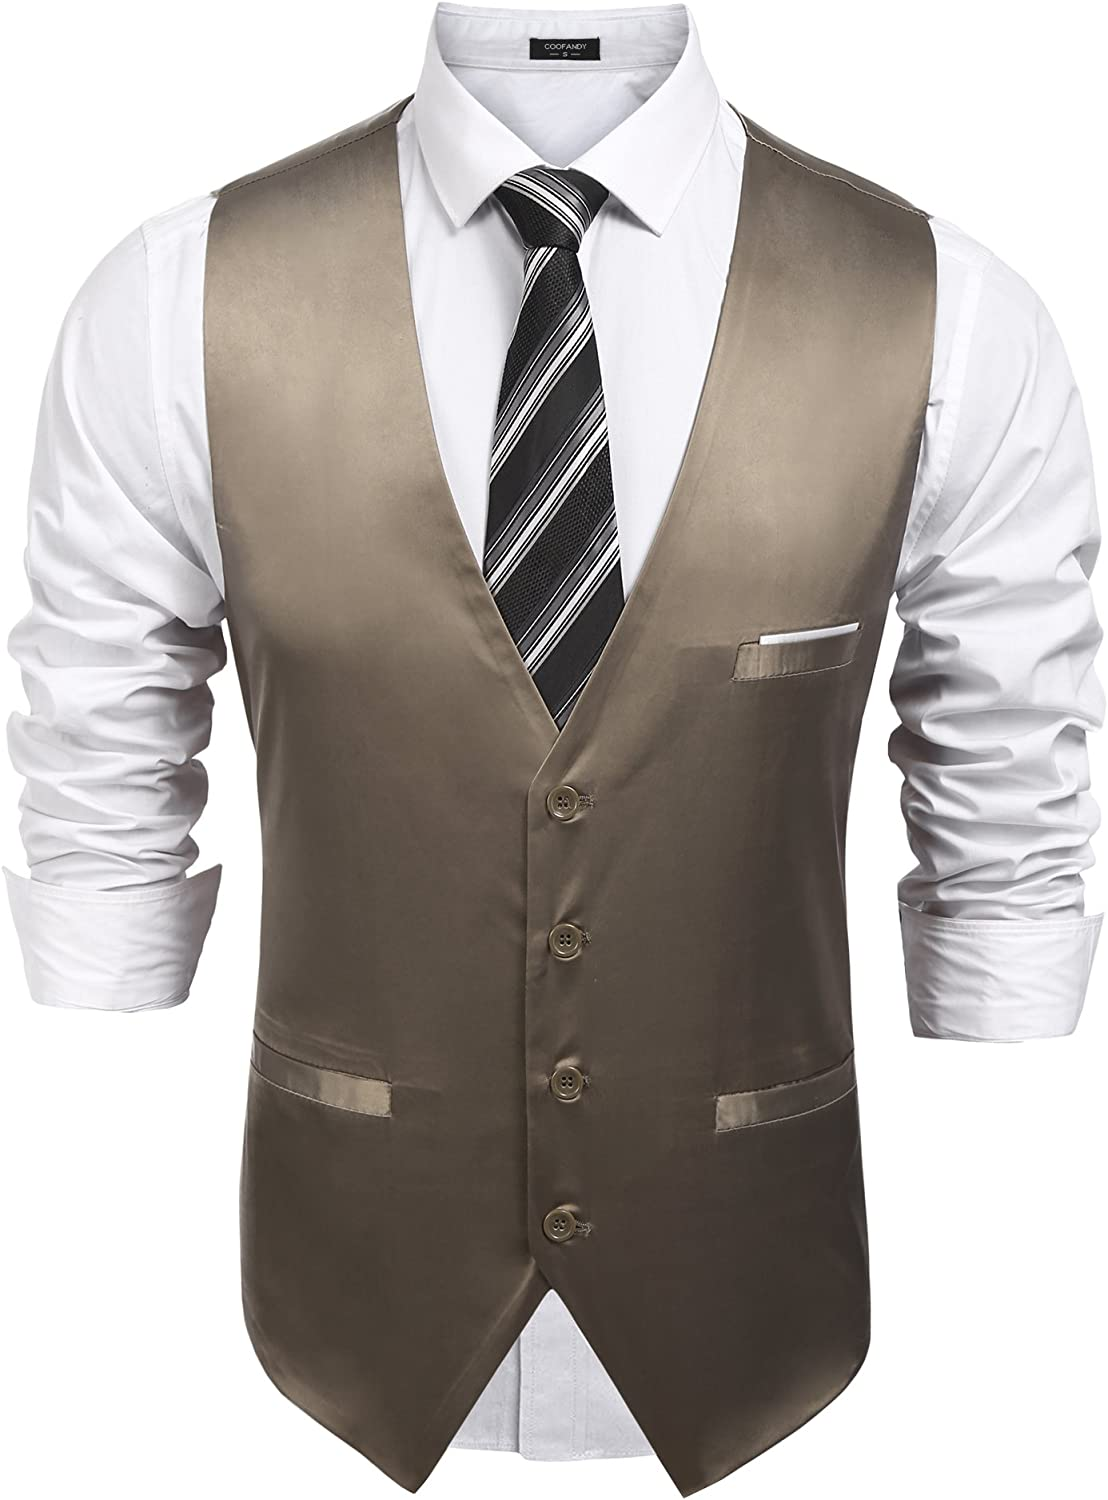 COOFANDY Men's Pinstripe Suit Vest Slim Fit Casual Business Waistcoat Jacket Vests